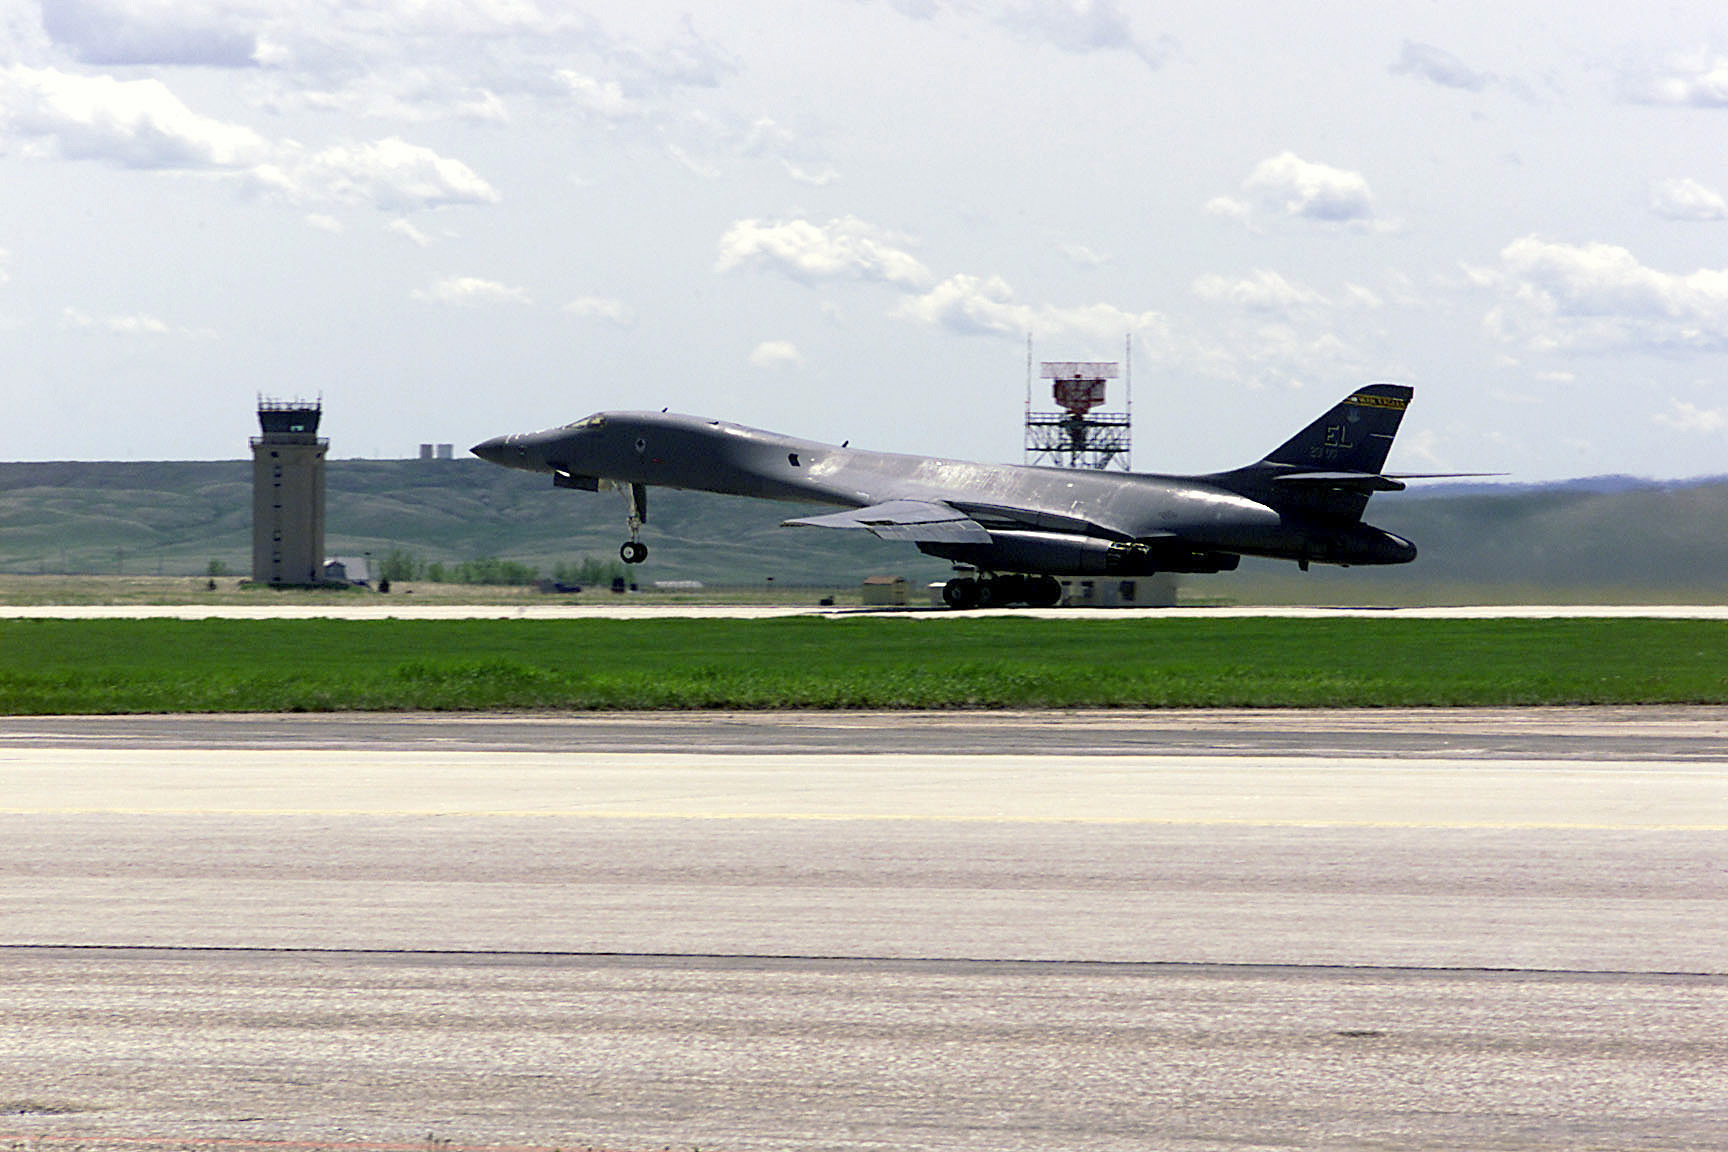 A B-1B Lancer takes off from Ellsworth AFB in front of the control tower and radar.